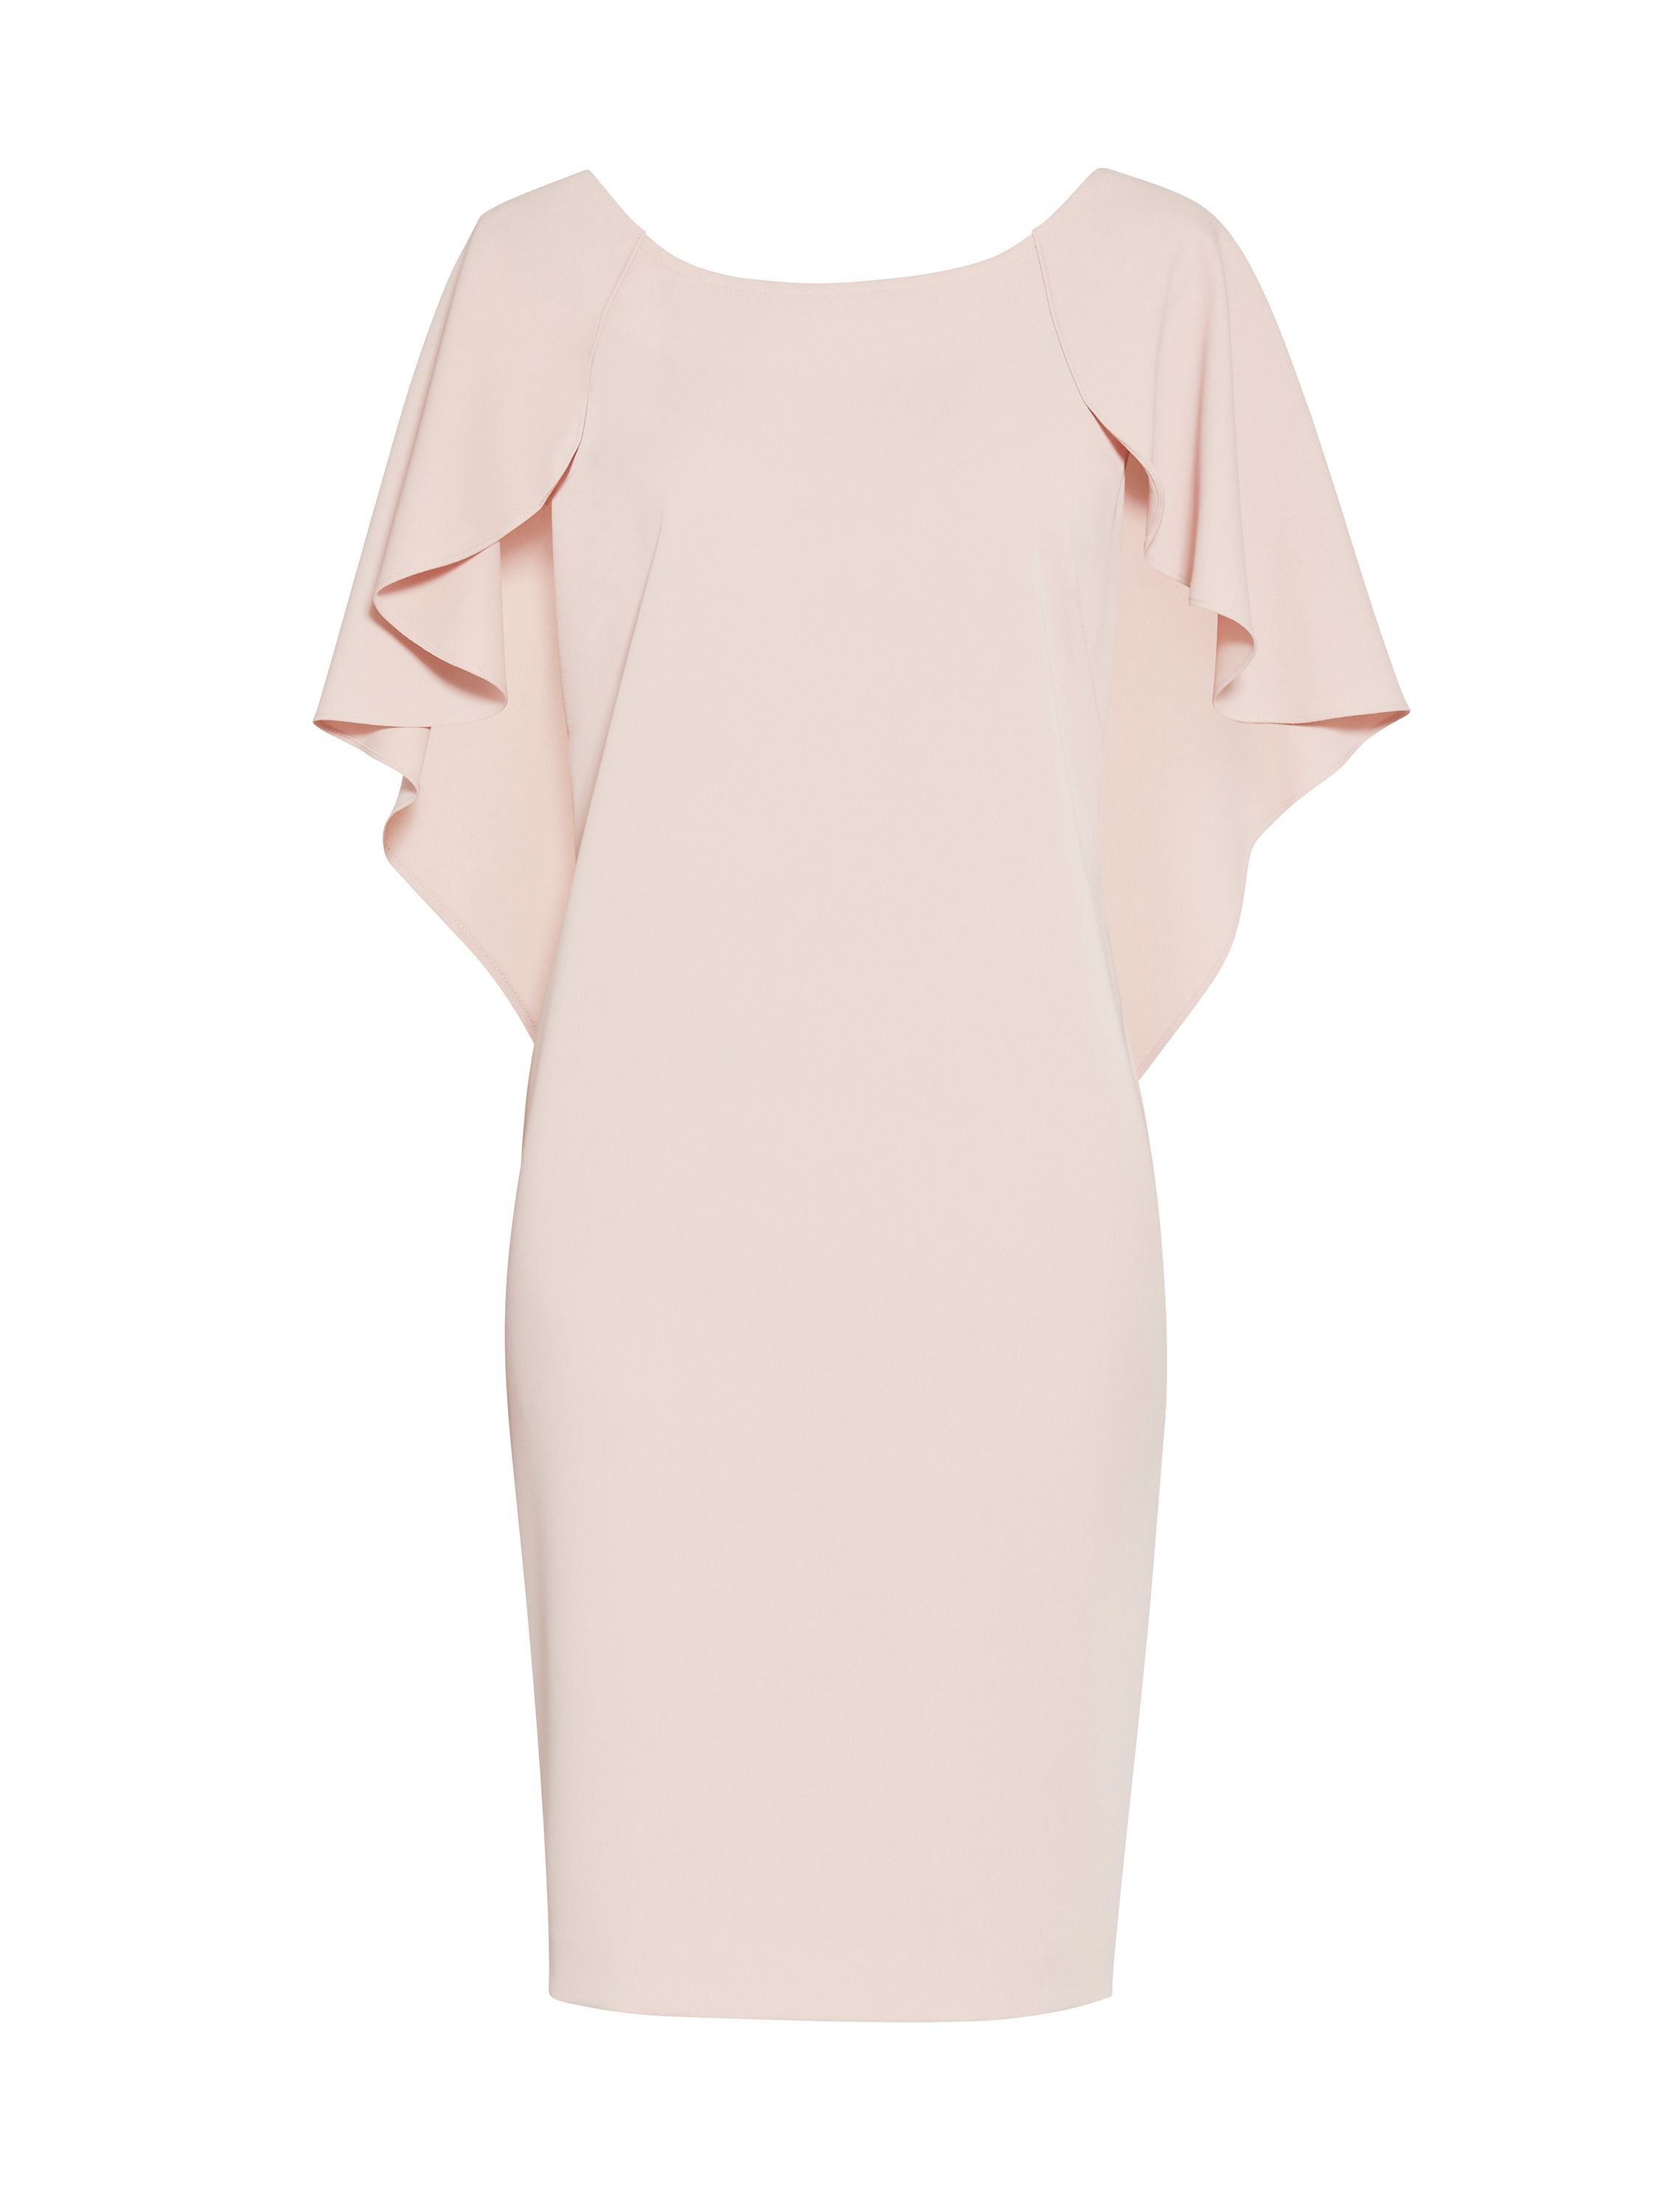 Gina bacconi moss crepe dress with cape detail